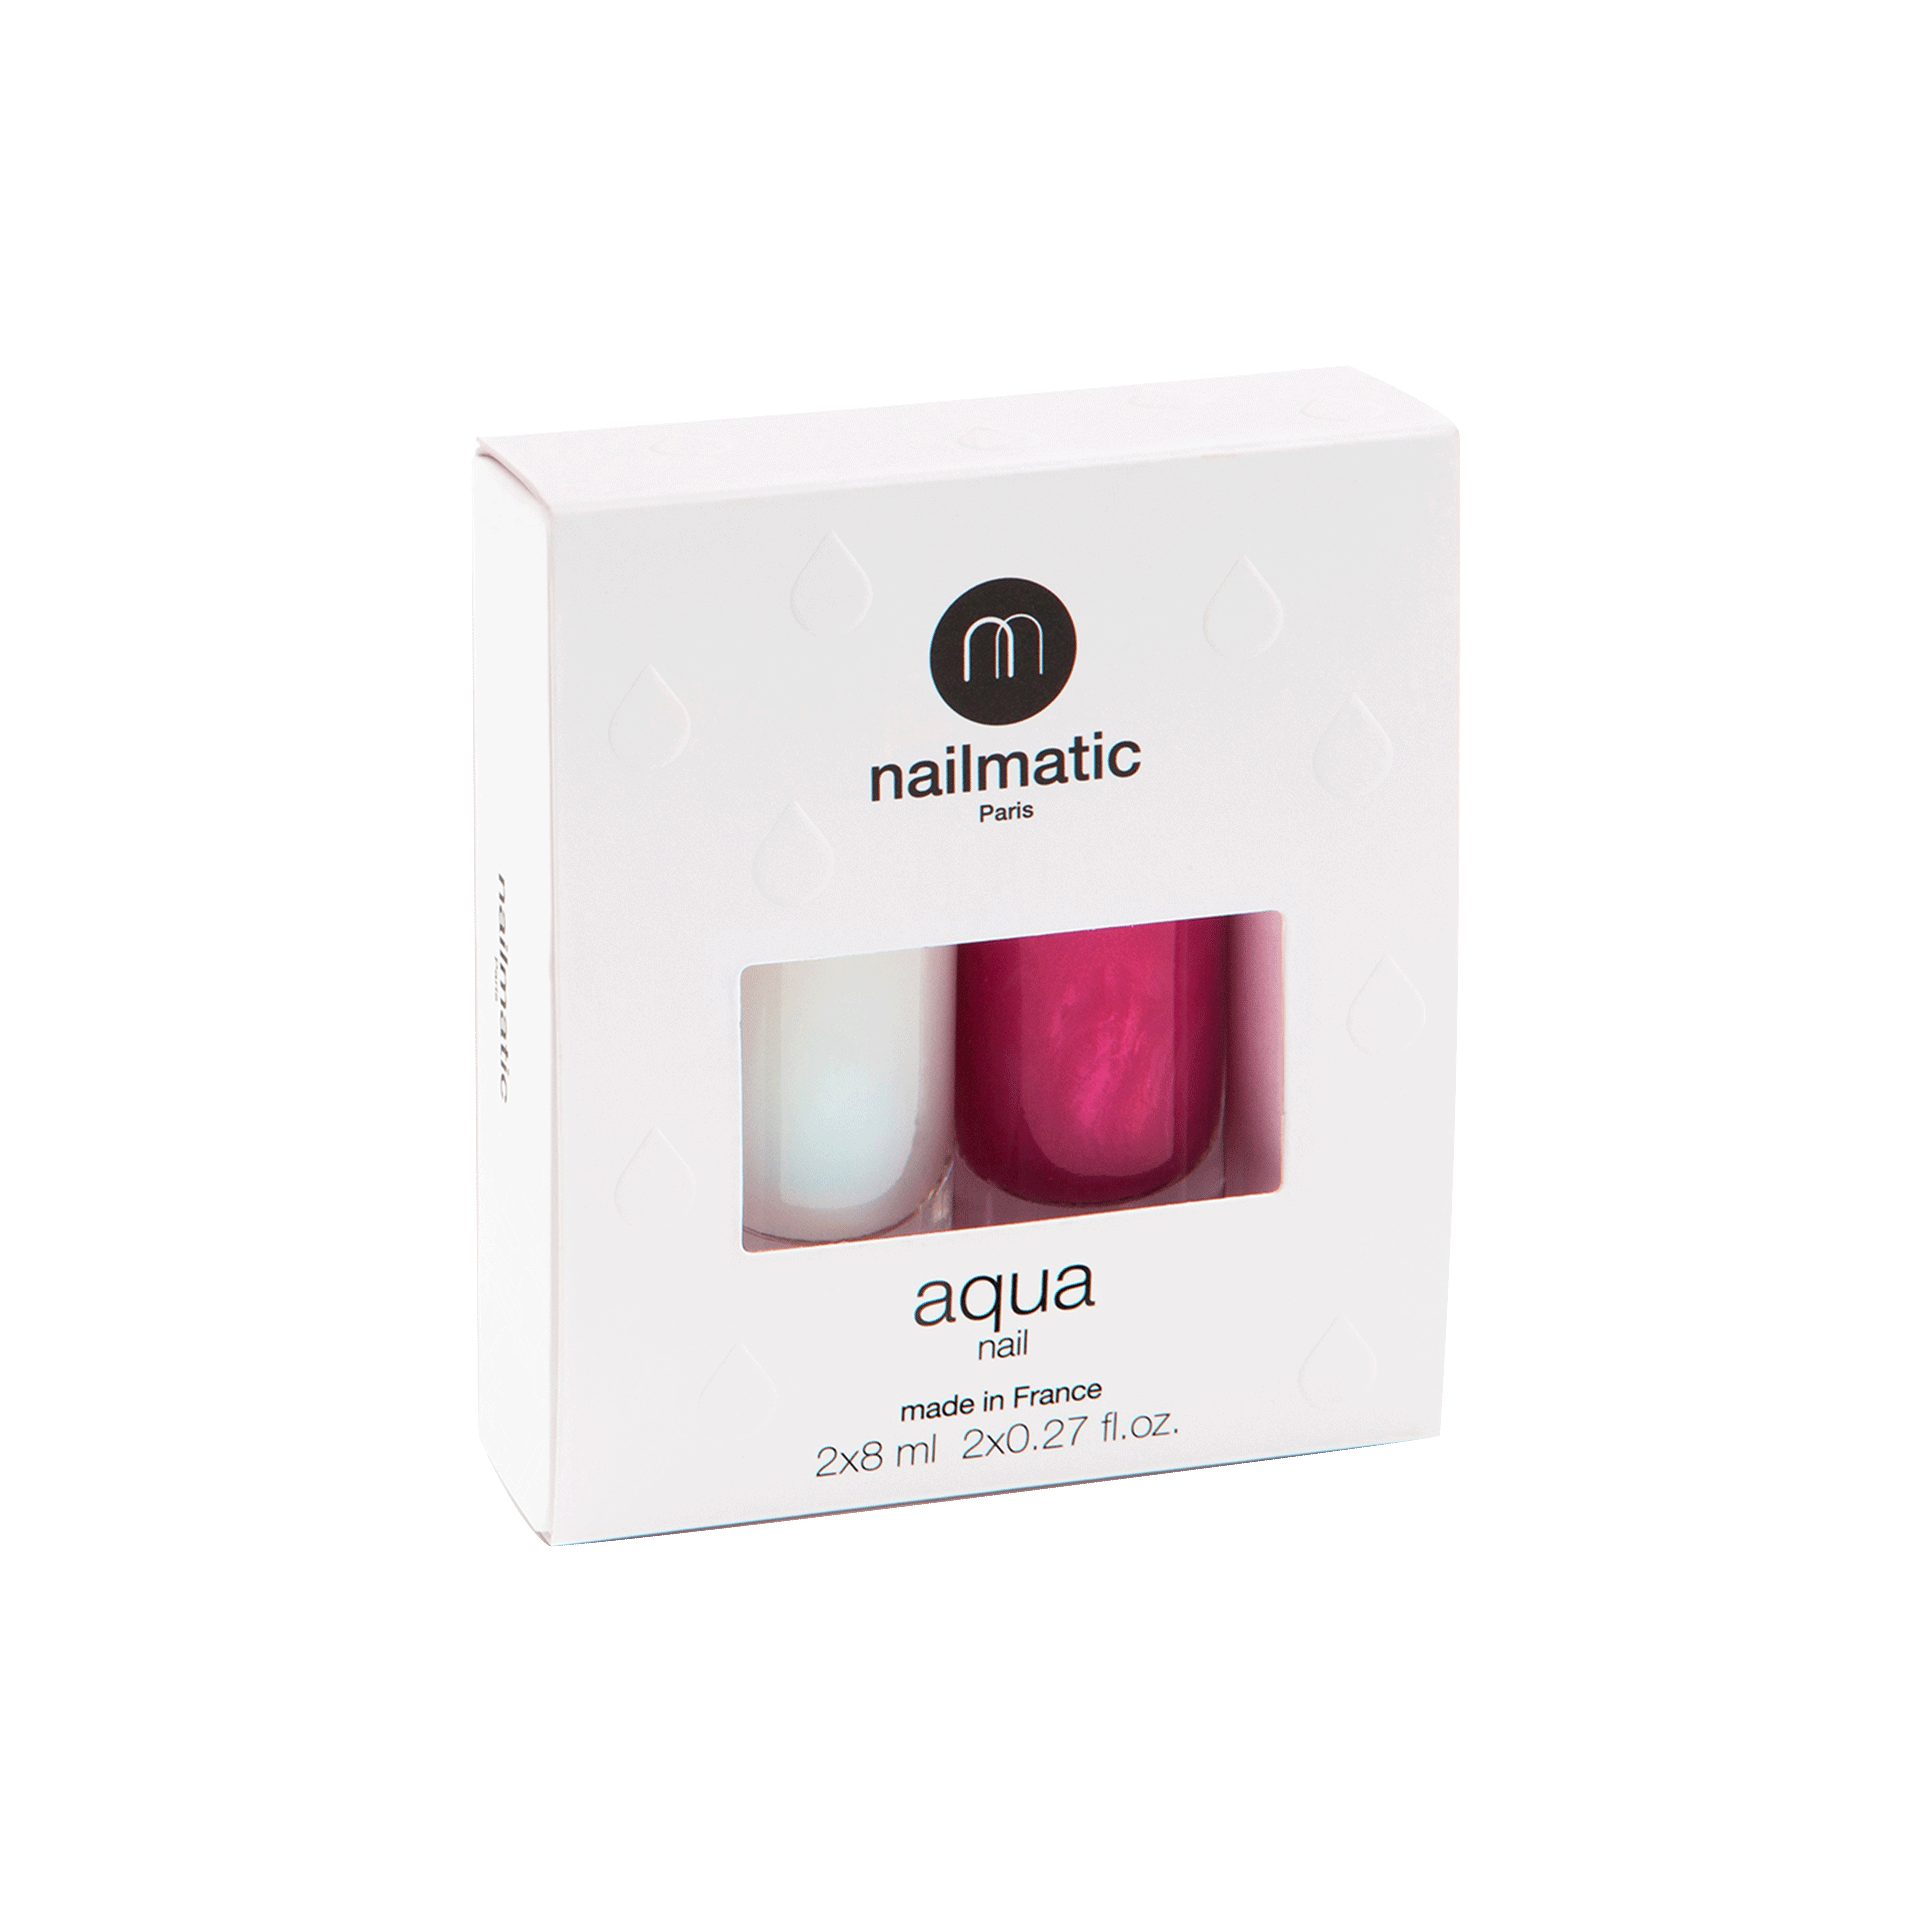 My Atlas Pocket Map, OMY